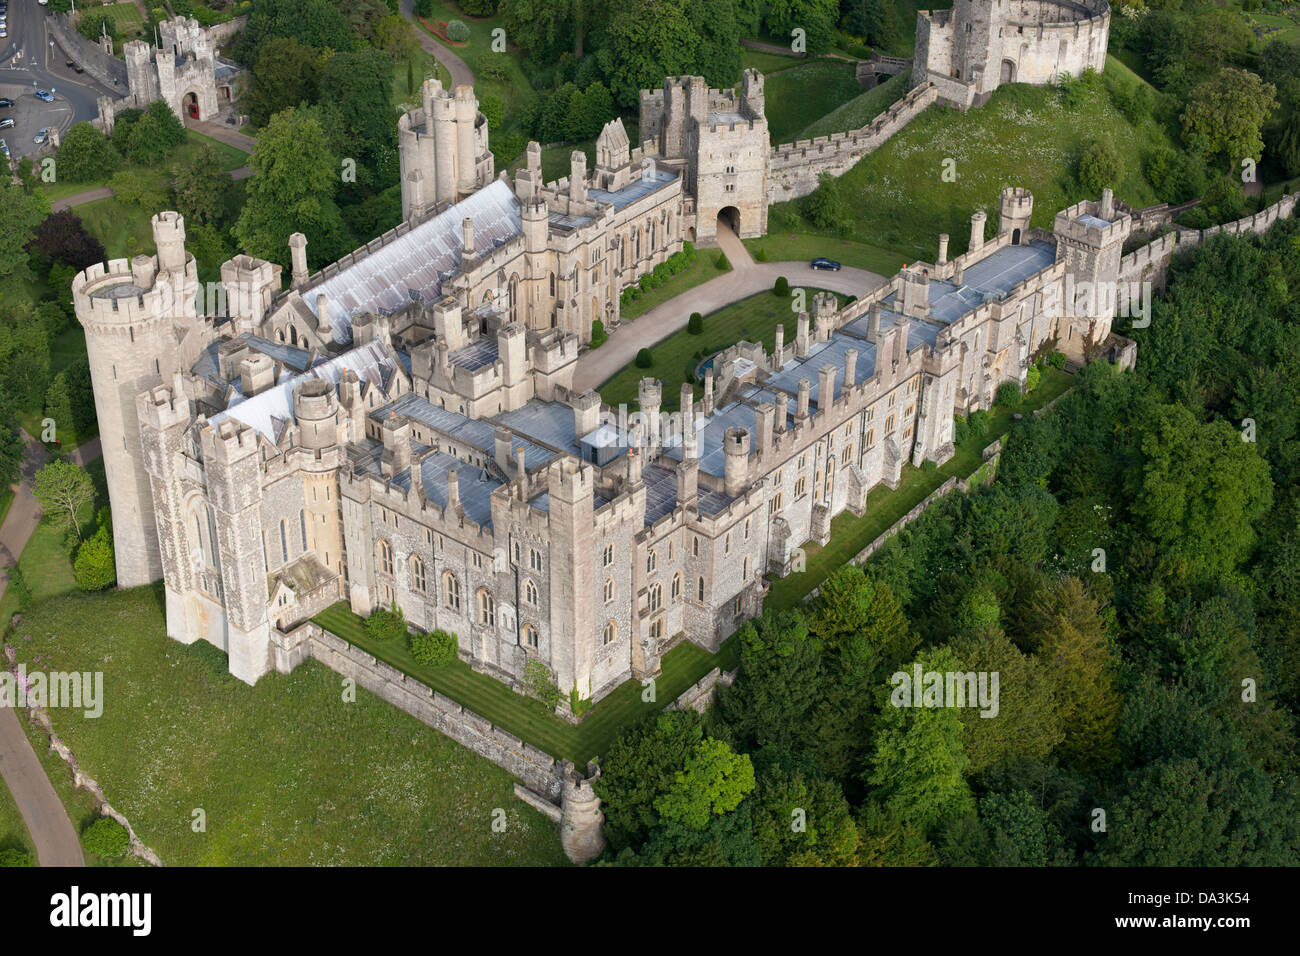 ARUNDEL CASTLE (aerial view). Medieval castle in West Sussex, England, Great Britain, United Kingdom. Stock Photo